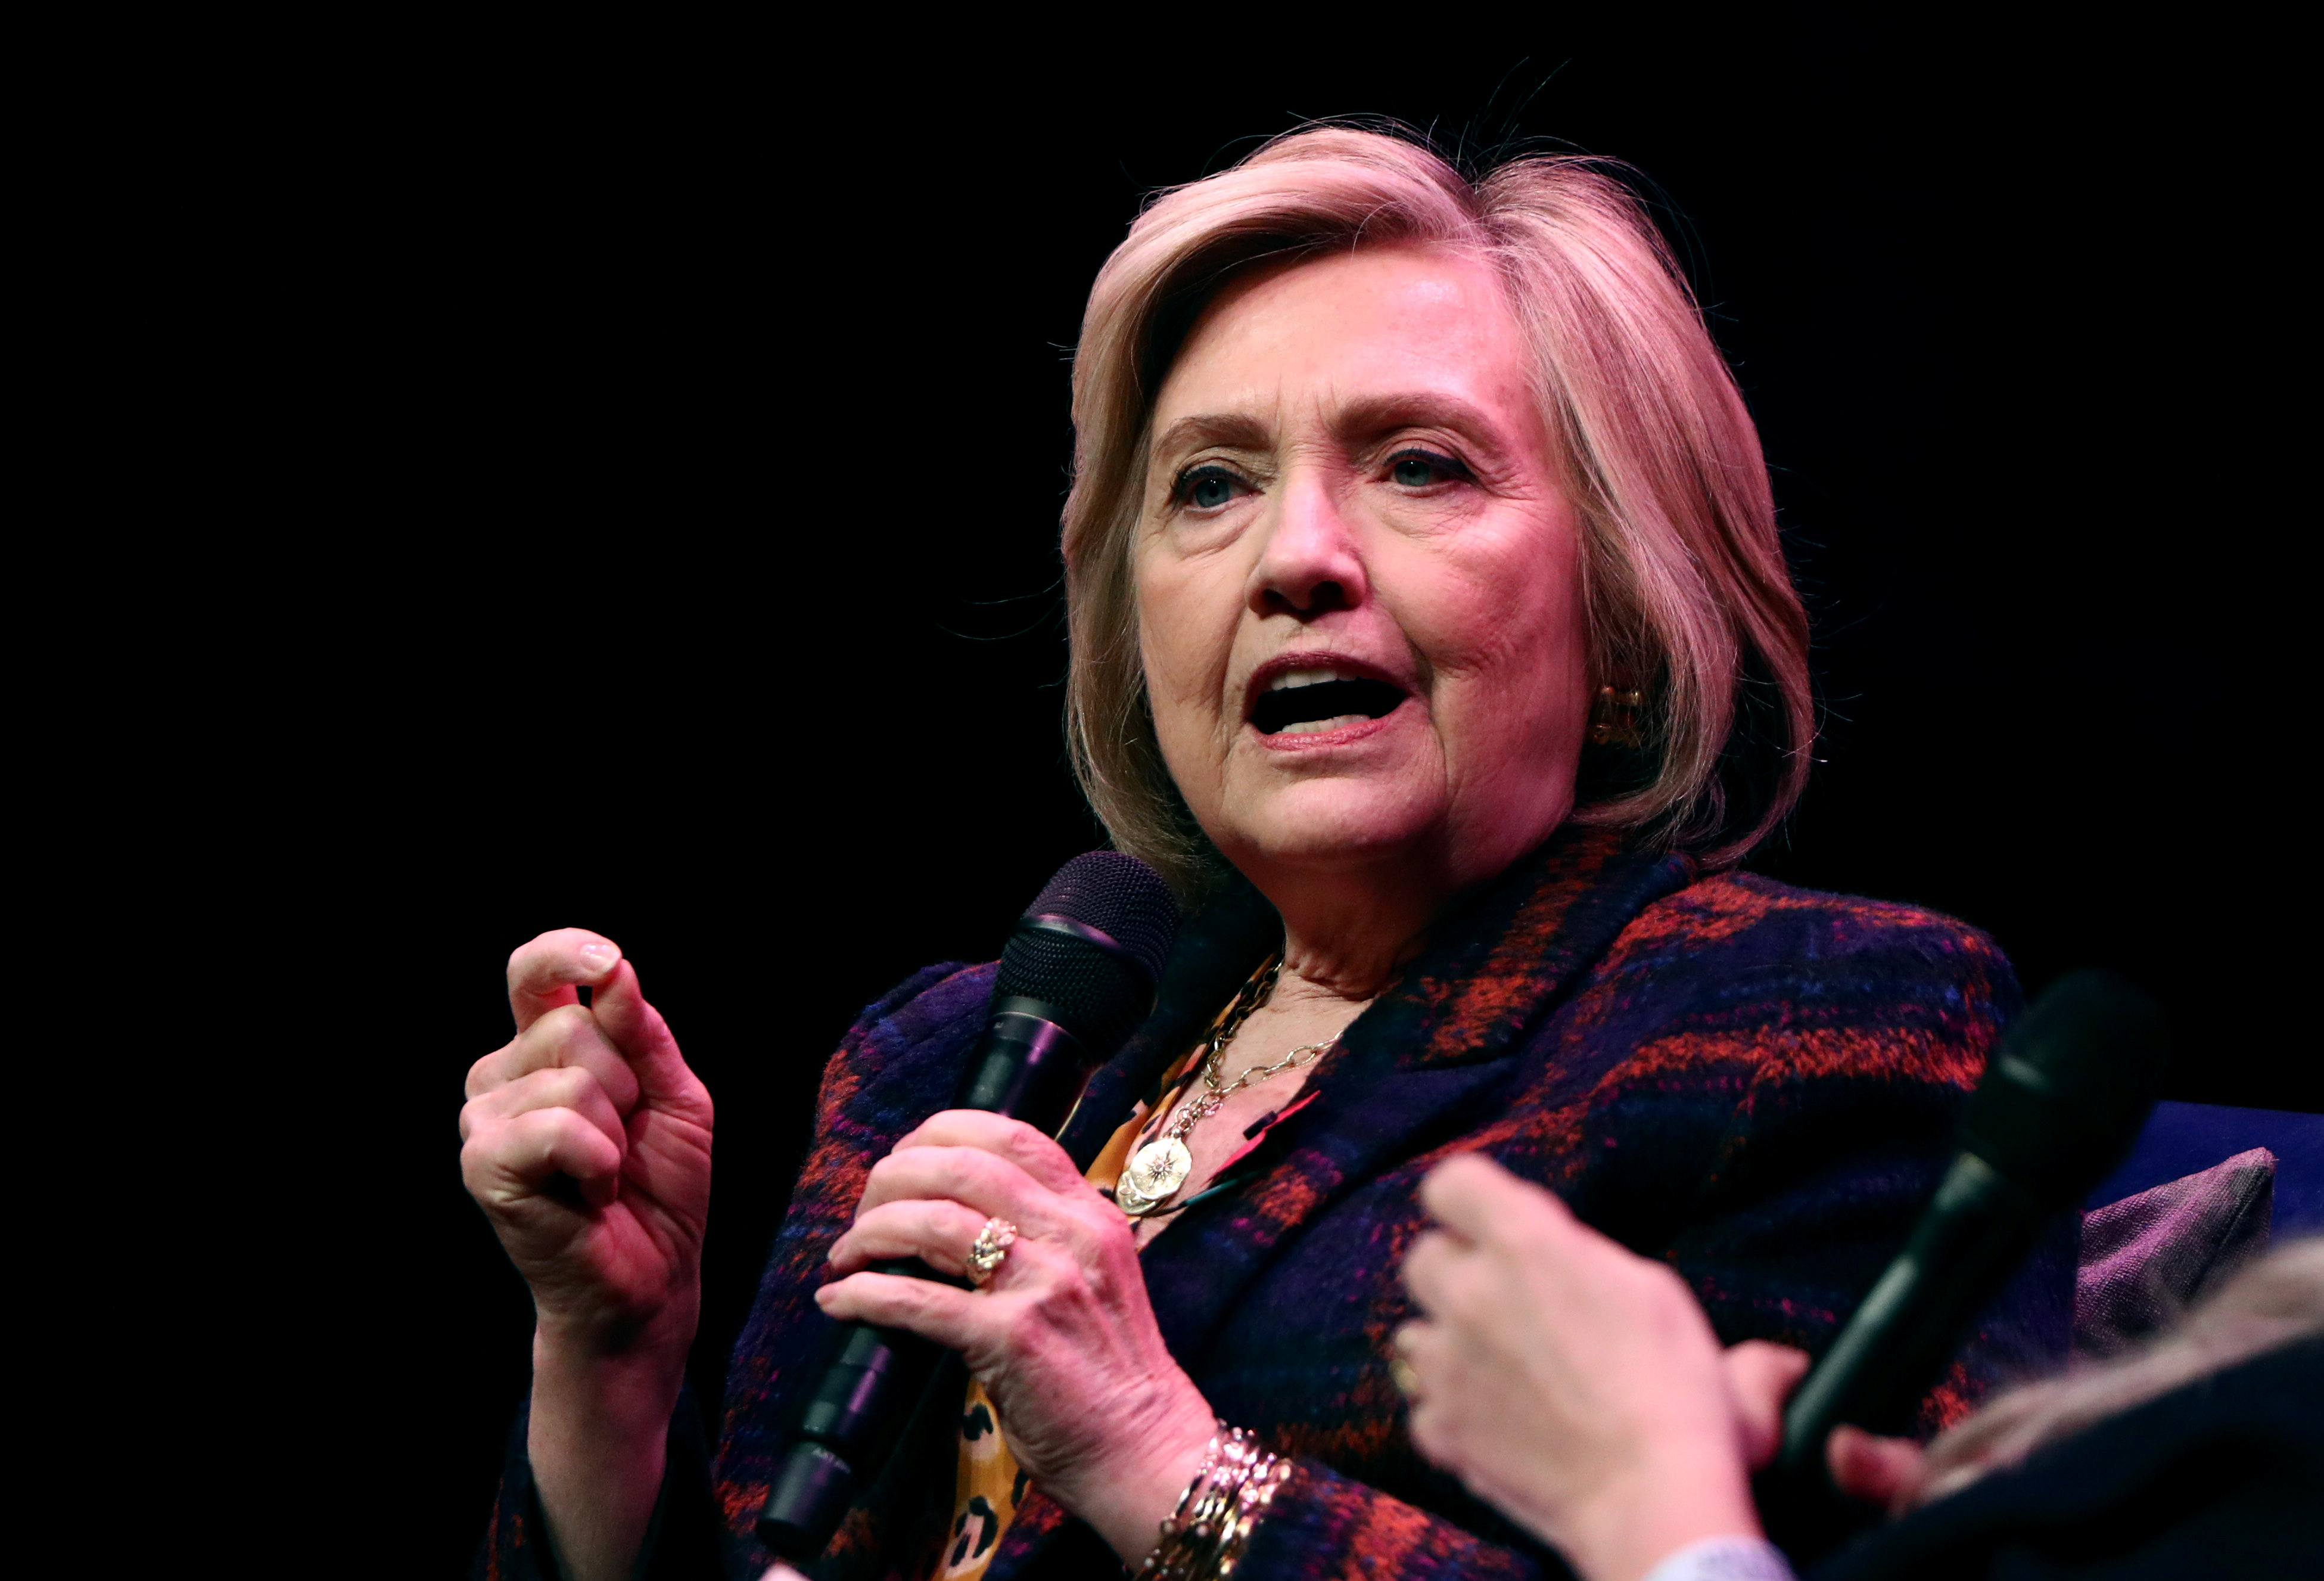 'Shameful' of UK not to publish report on Russian meddling, says Hillary Clinton